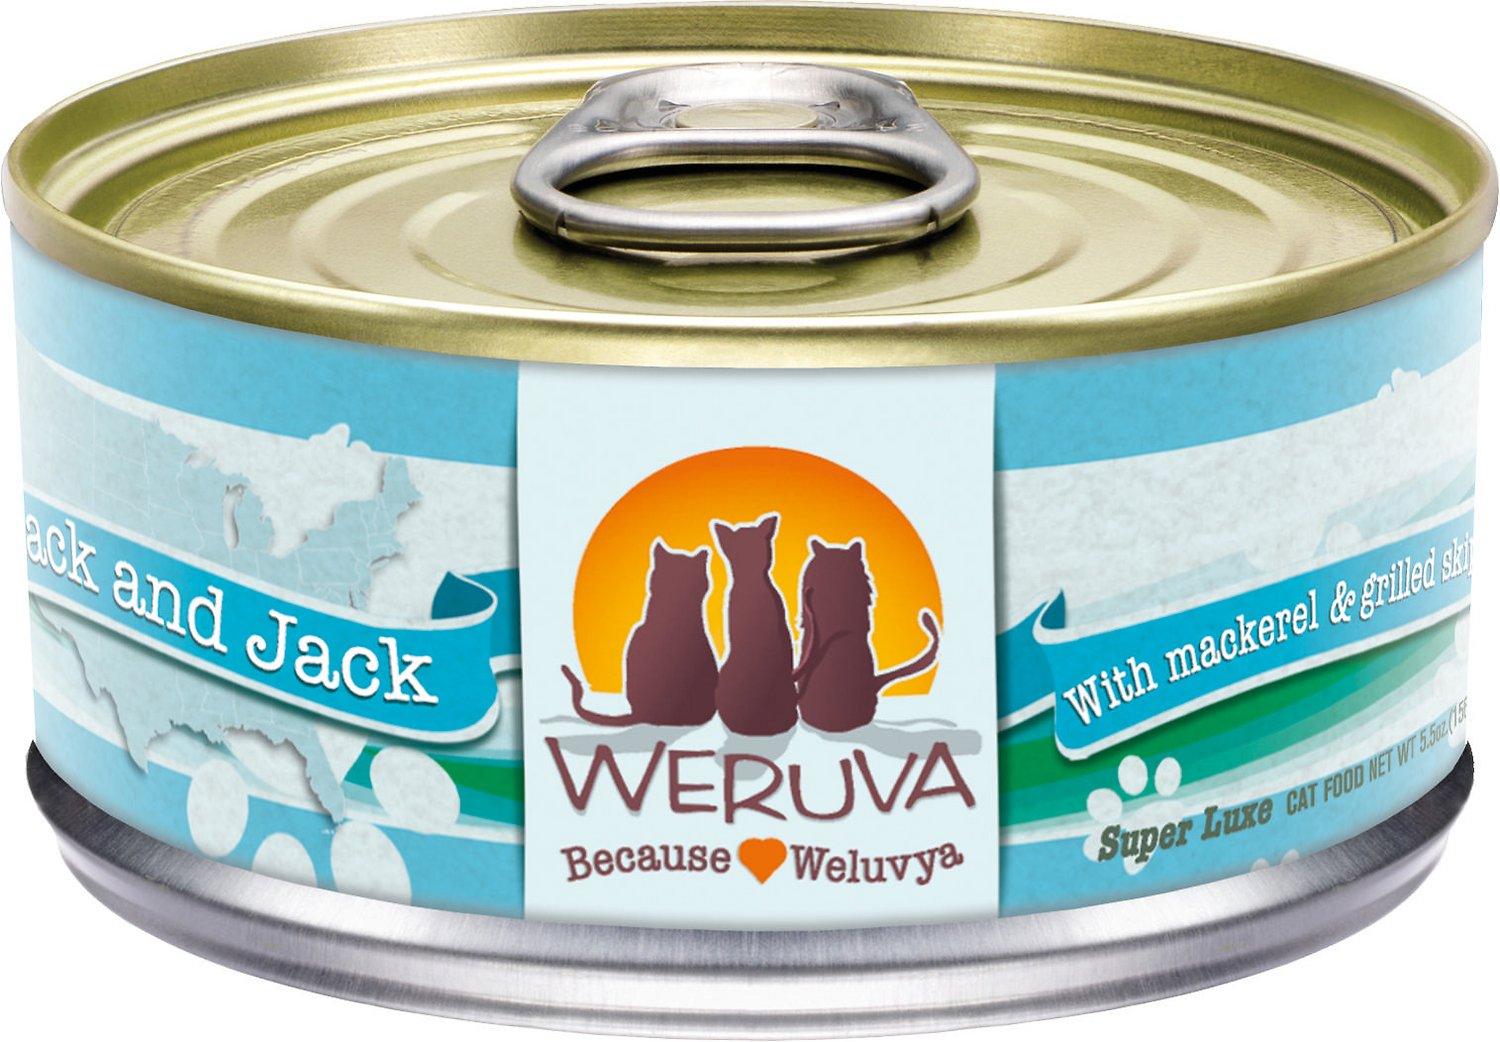 Weruva Cat Classic Mack and Jack with Mackerel & Grilled Skipjack Grain-Free Wet Cat Food, 3-oz